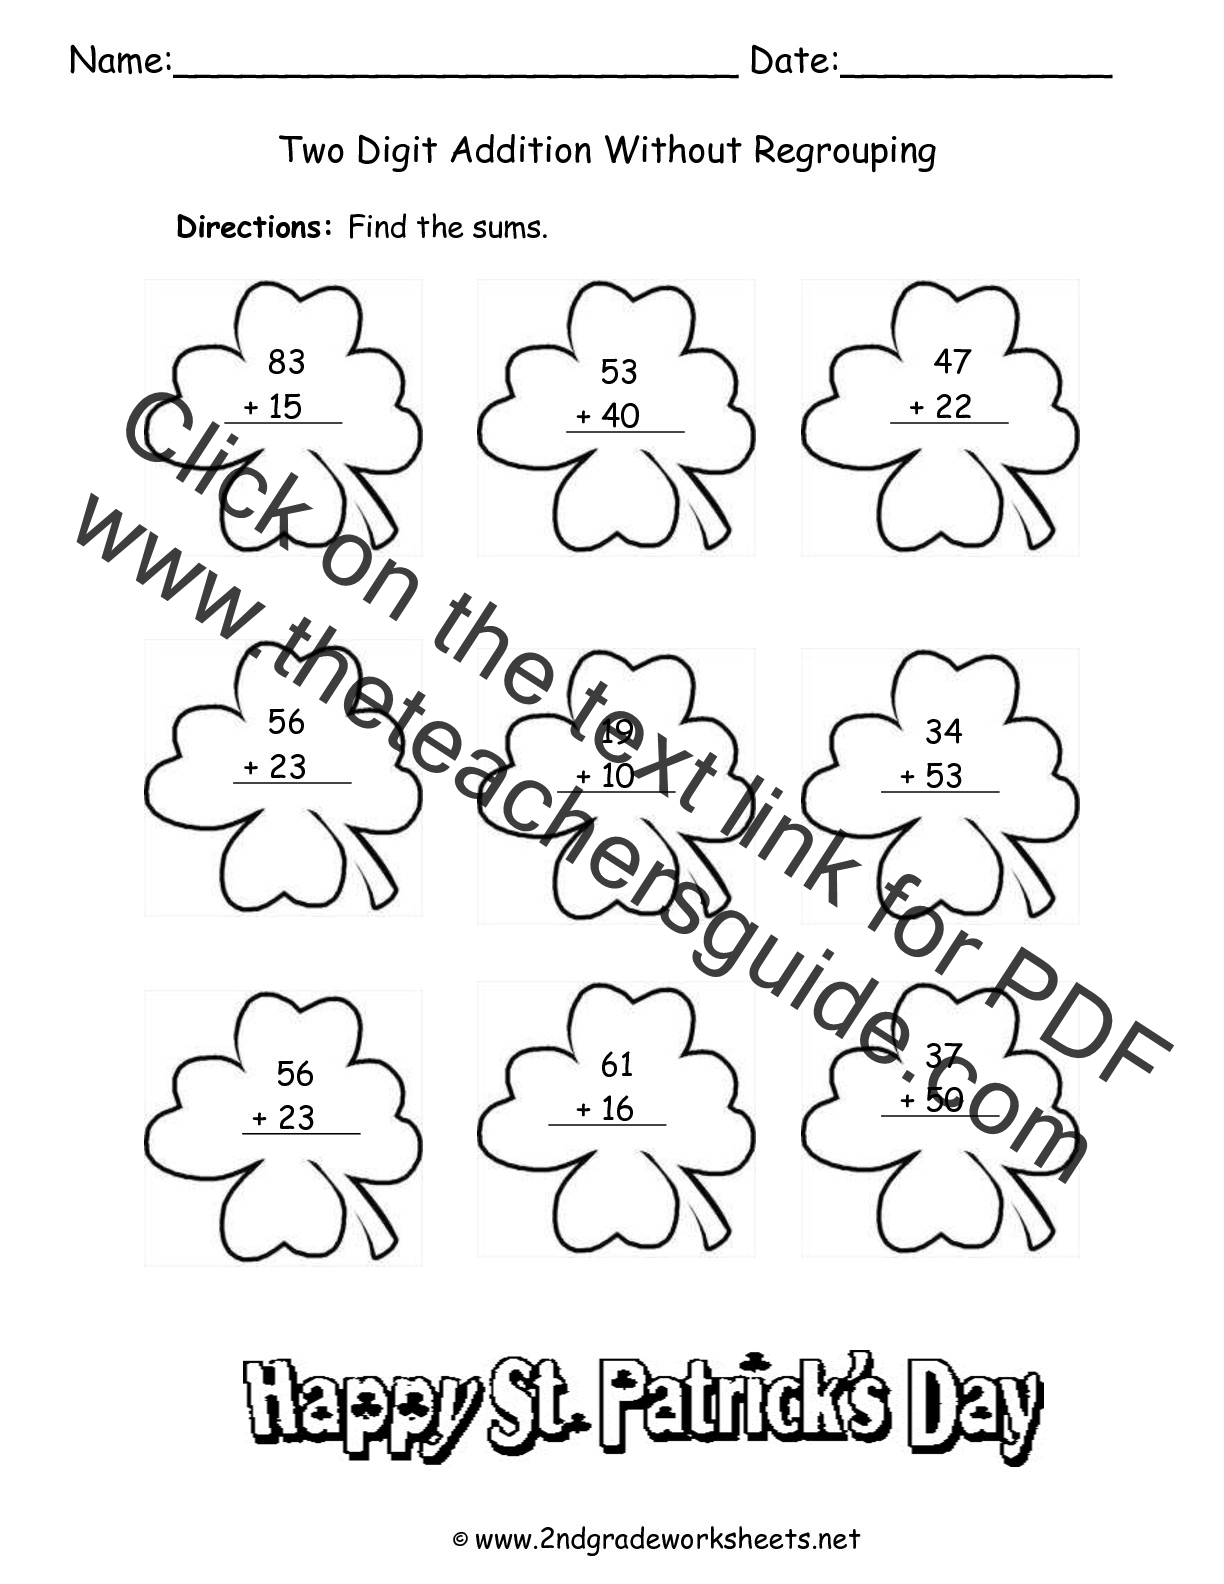 math worksheet : st patricku0027s day printouts and worksheets : Subtracting Two Digit Numbers With Regrouping Worksheets